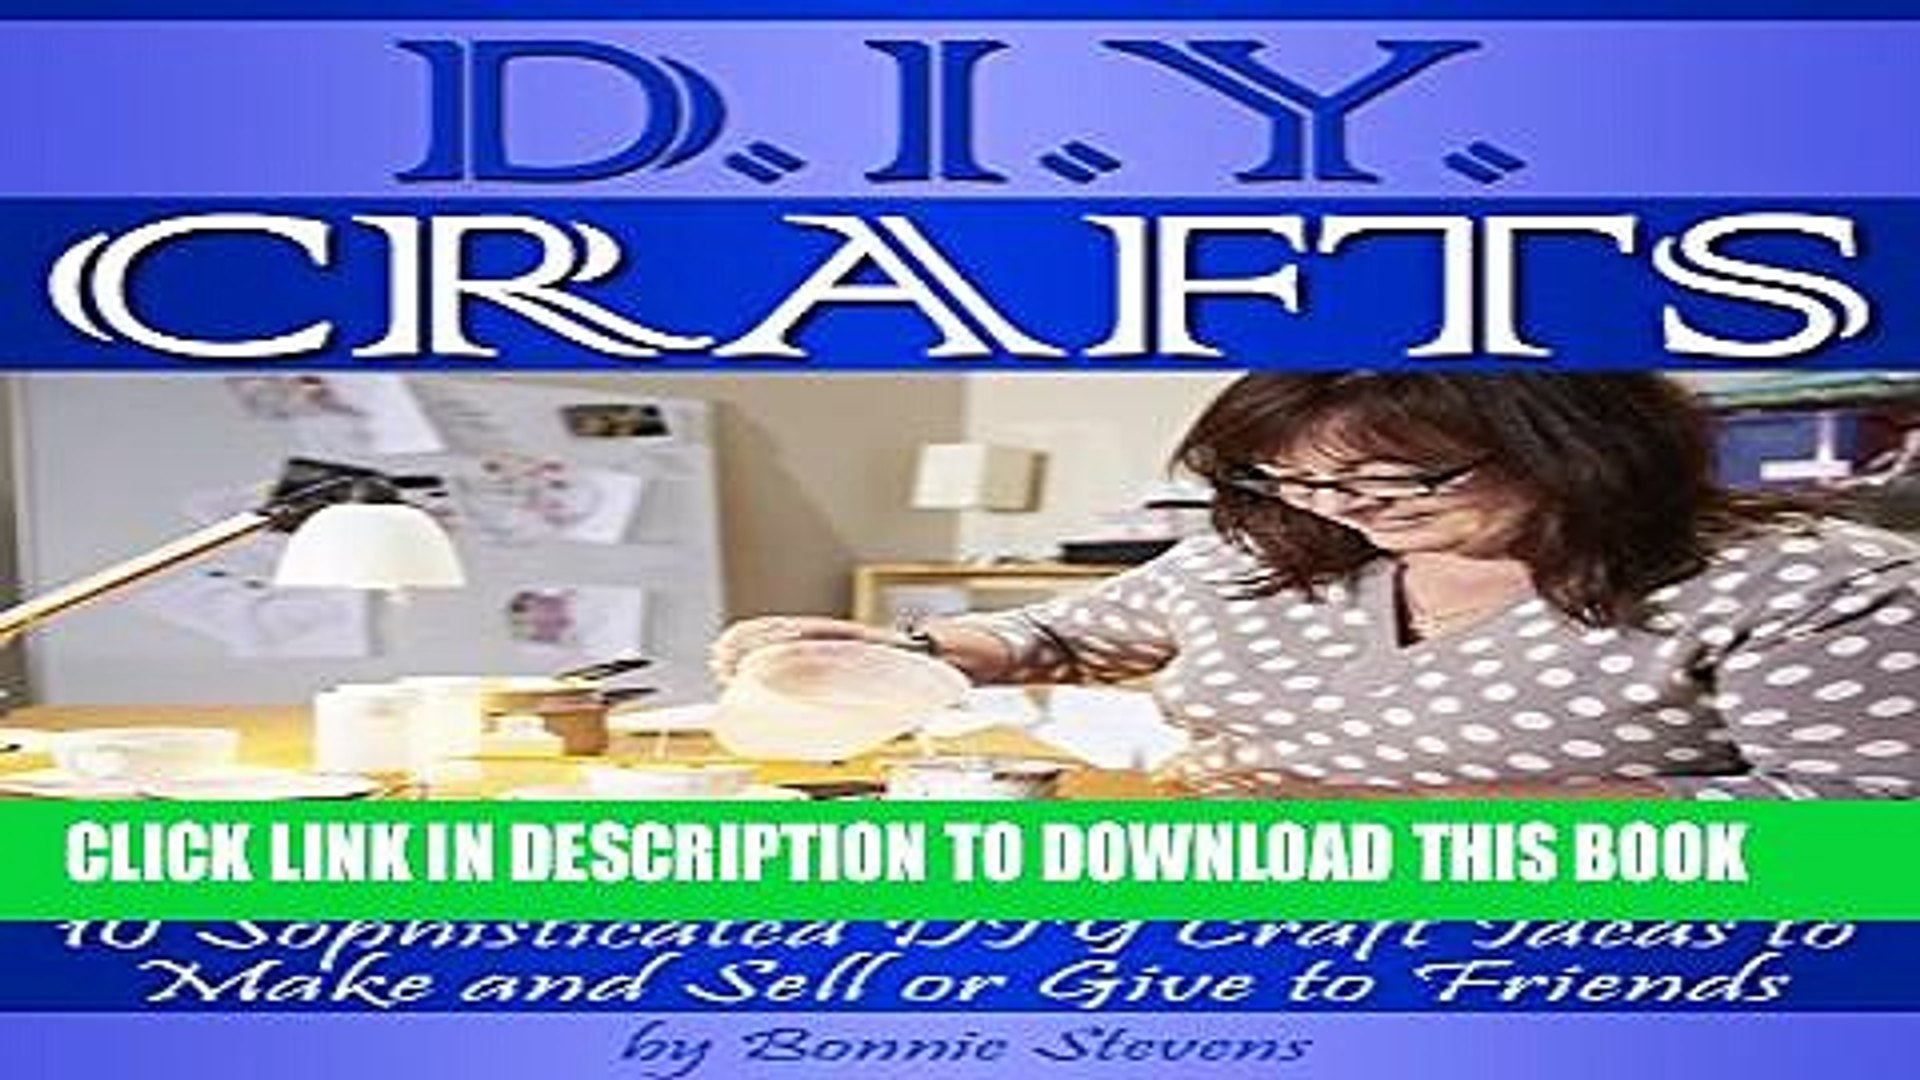 [PDF] DIY Crafts: 10 Sophisticated DIY Craft Ideas to Make and Sell or Give to Friends ~ ( DIY